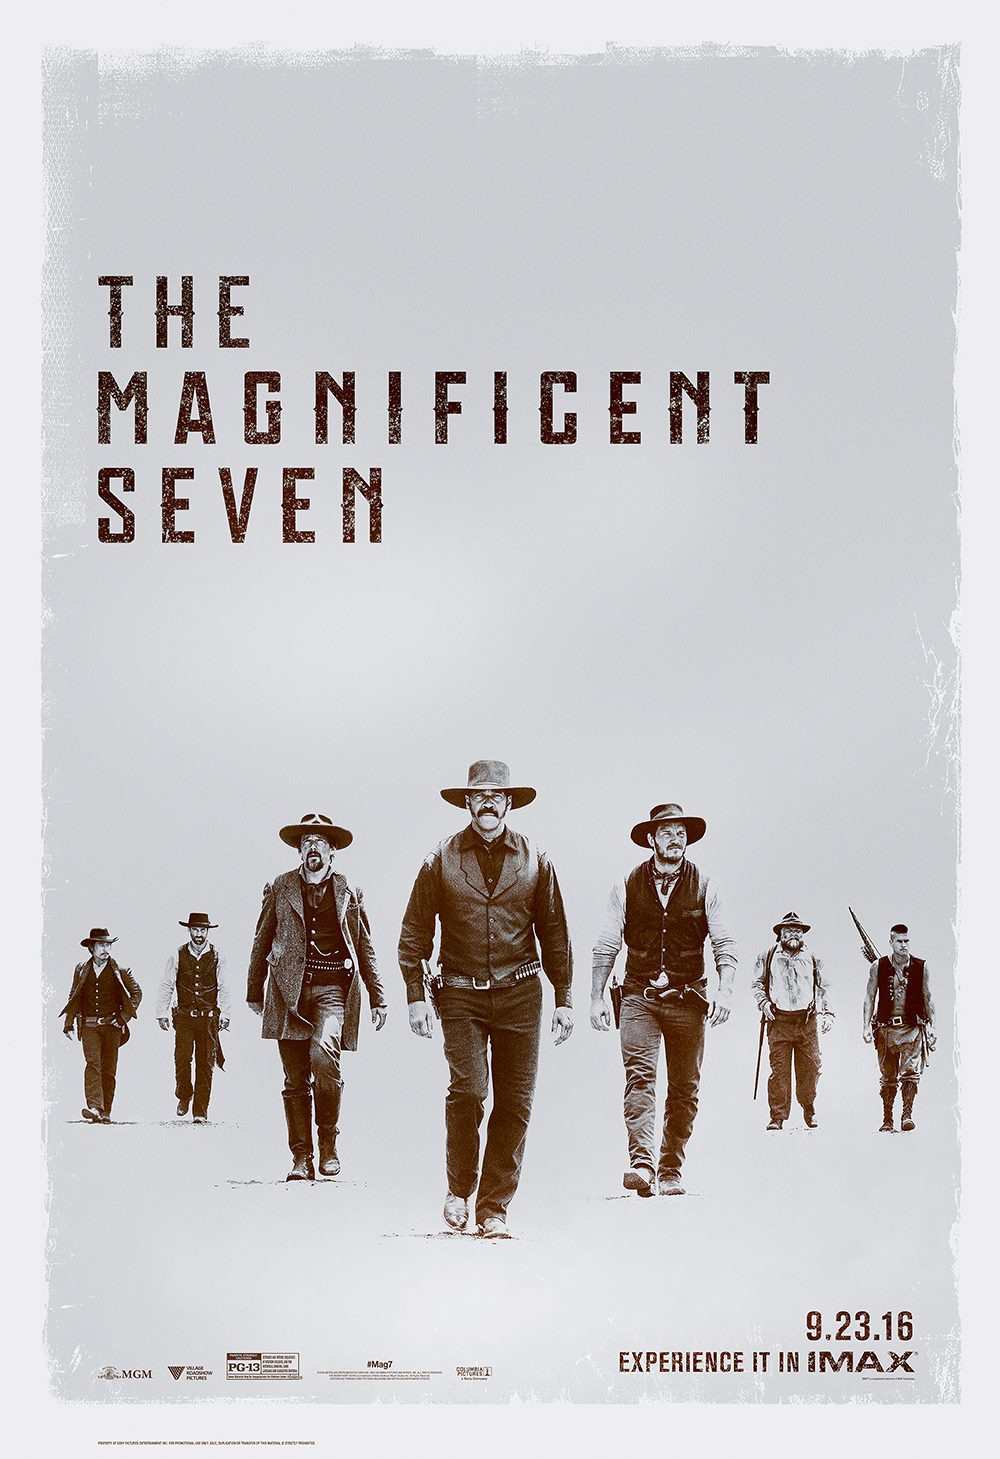 Magnificent seven 2016 movie poster